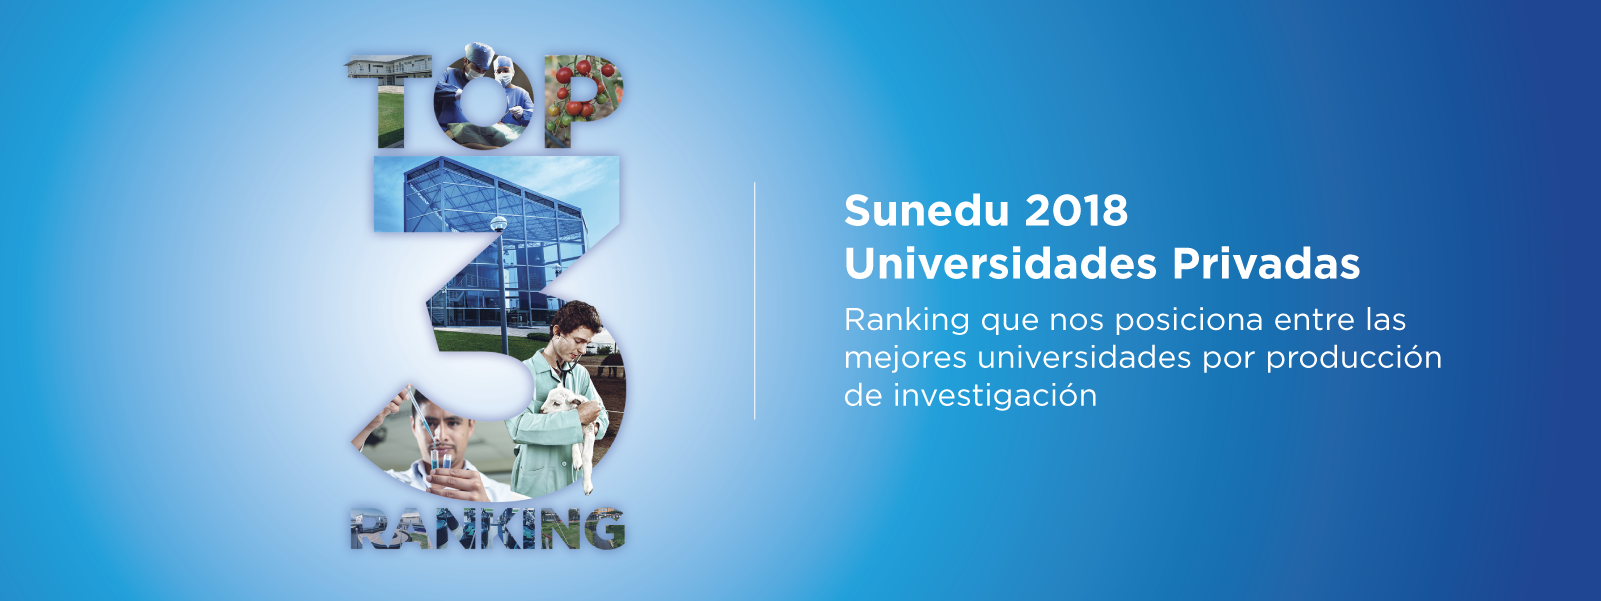 top_3_sunedu_2018_universidades_privadas